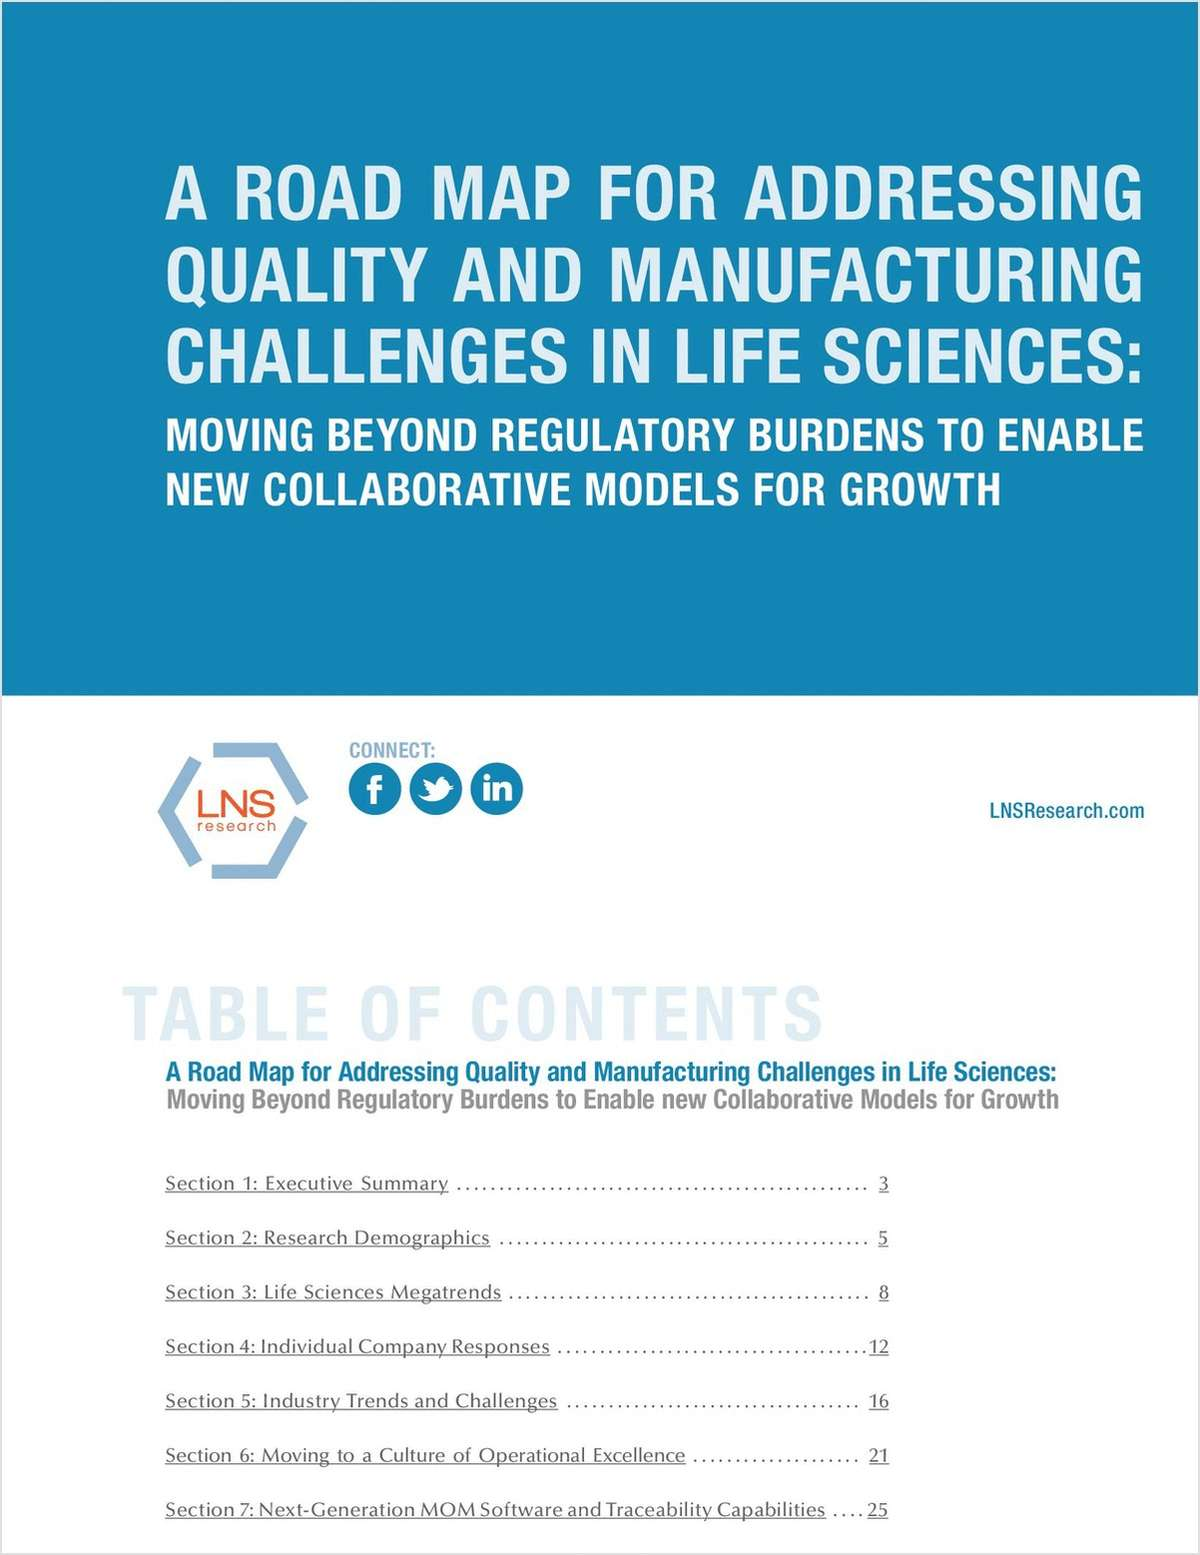 A Road Map for Addressing Quality and Manufacturing Challenges in Life Sciences